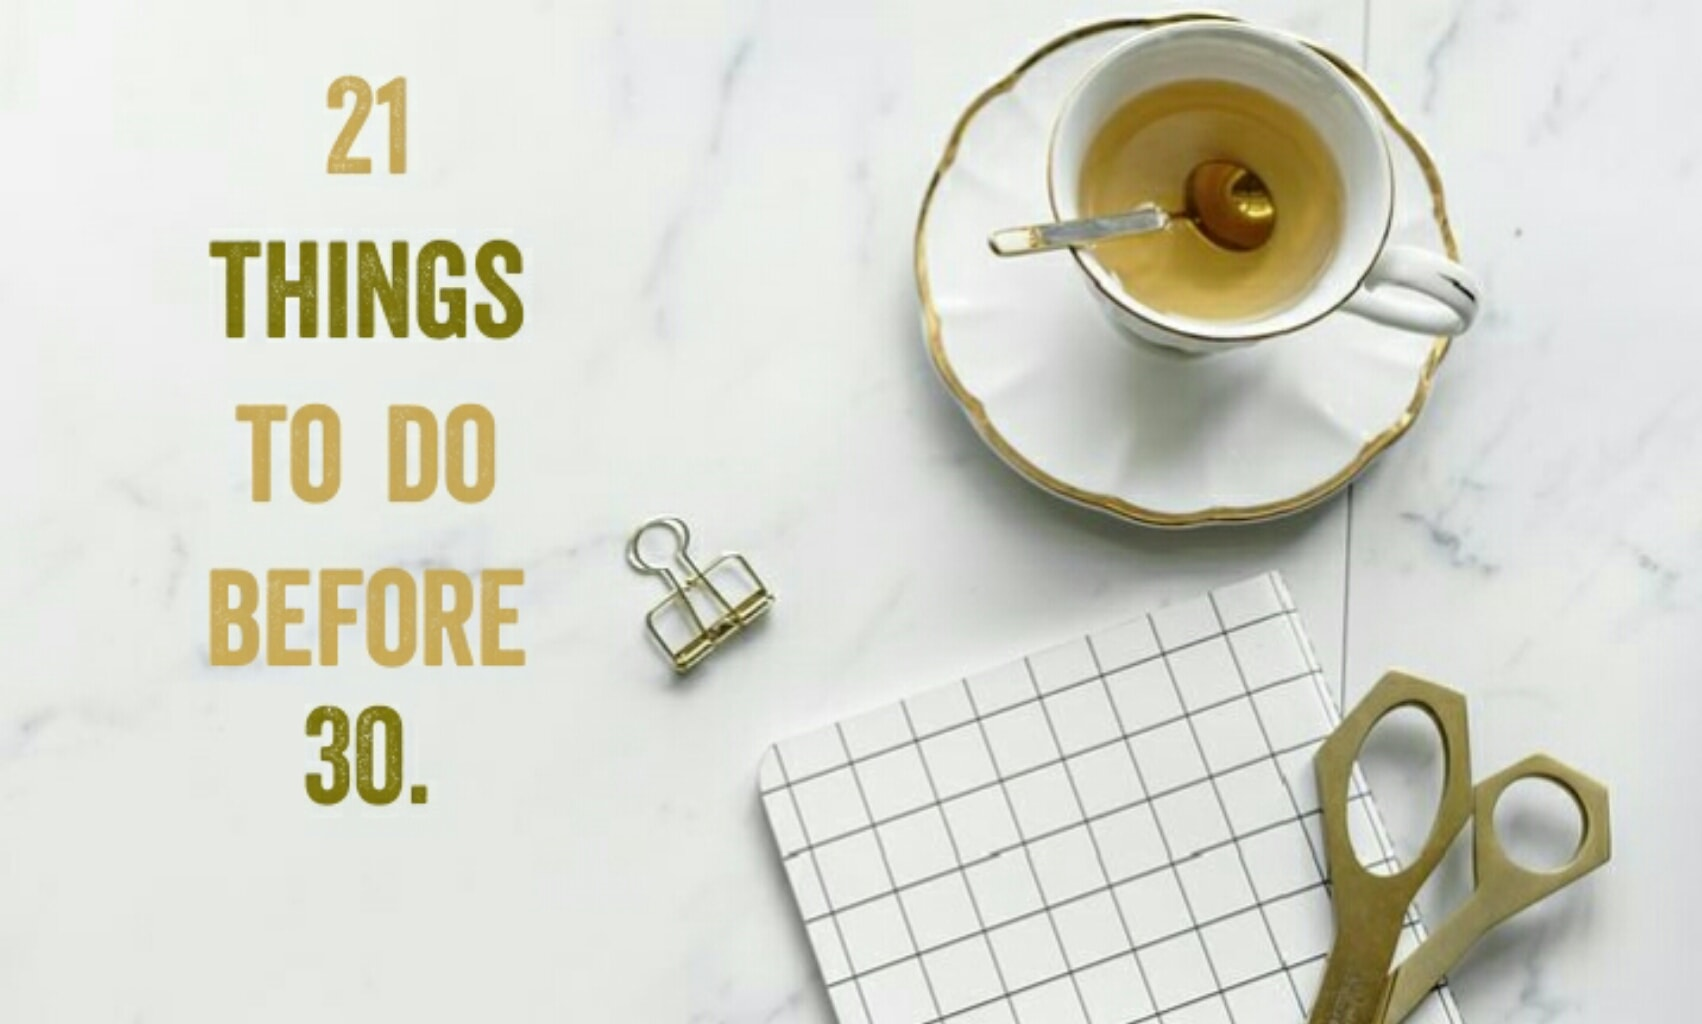 Before 30: 21 things you should just do